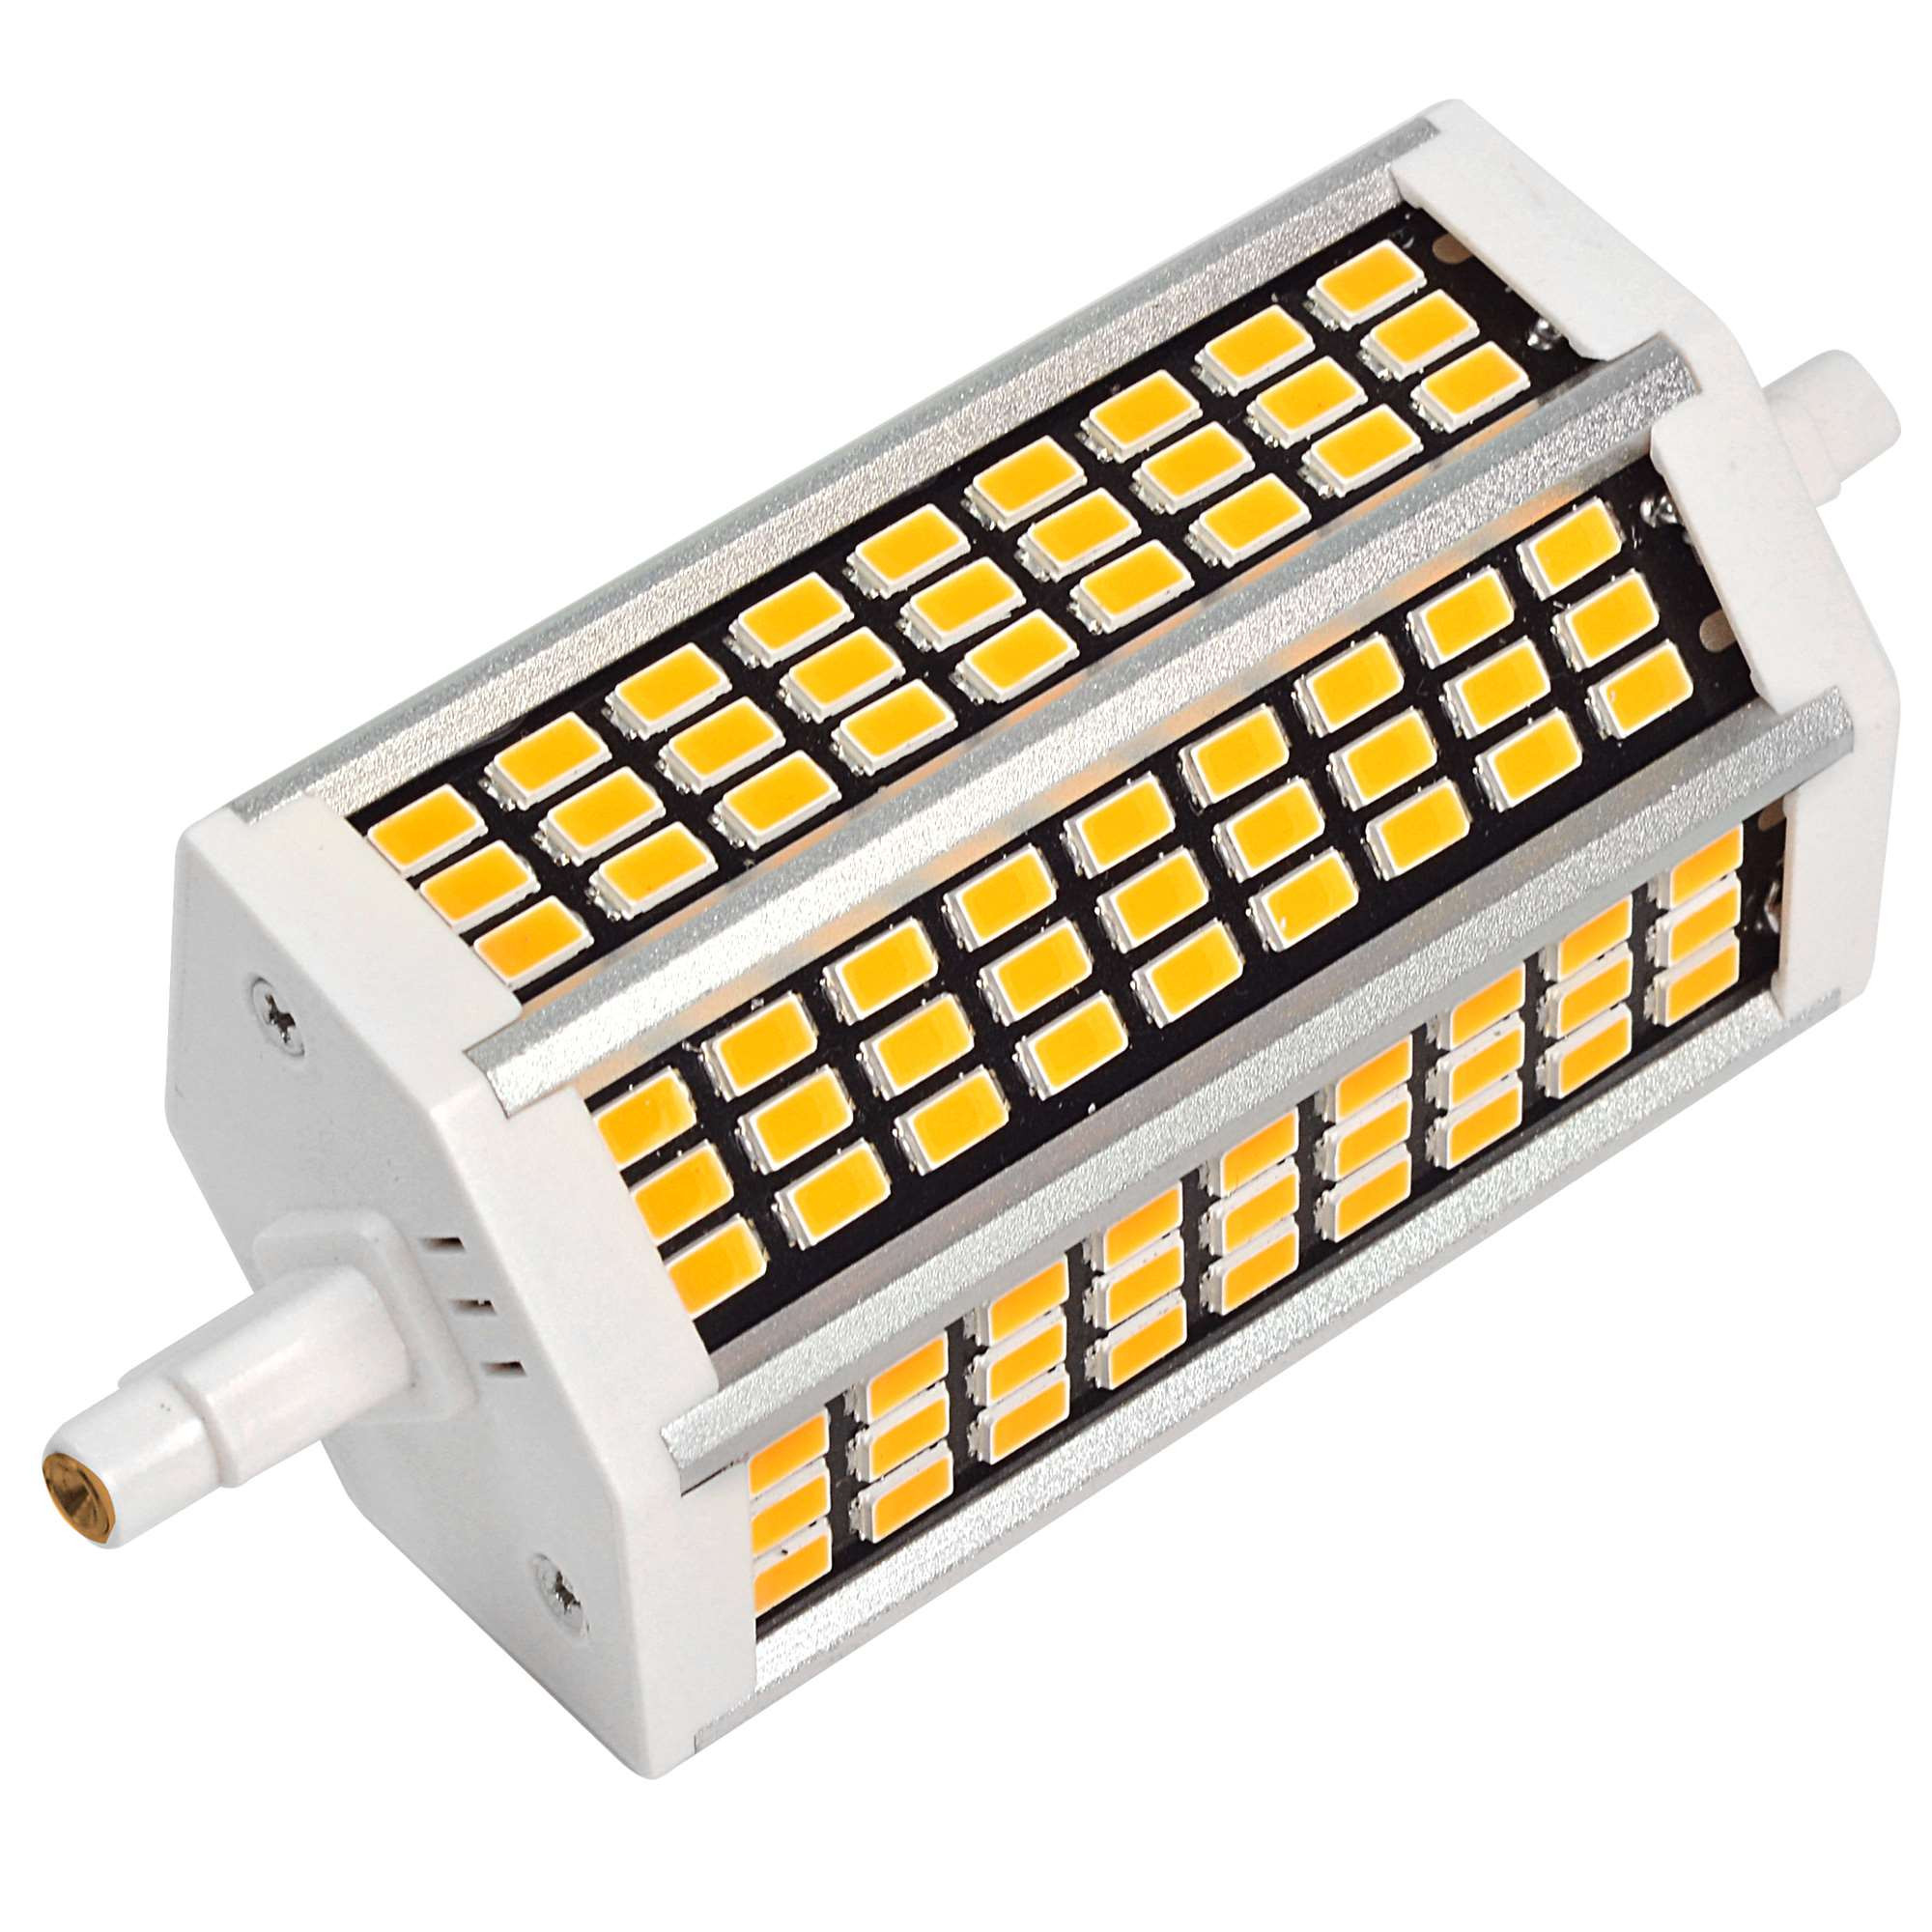 MENGS® R7s 10W LED Flood Light 81x 5733 SMD LED Bulb Lamp AC 220-240V In Cool White Energy-Saving Light